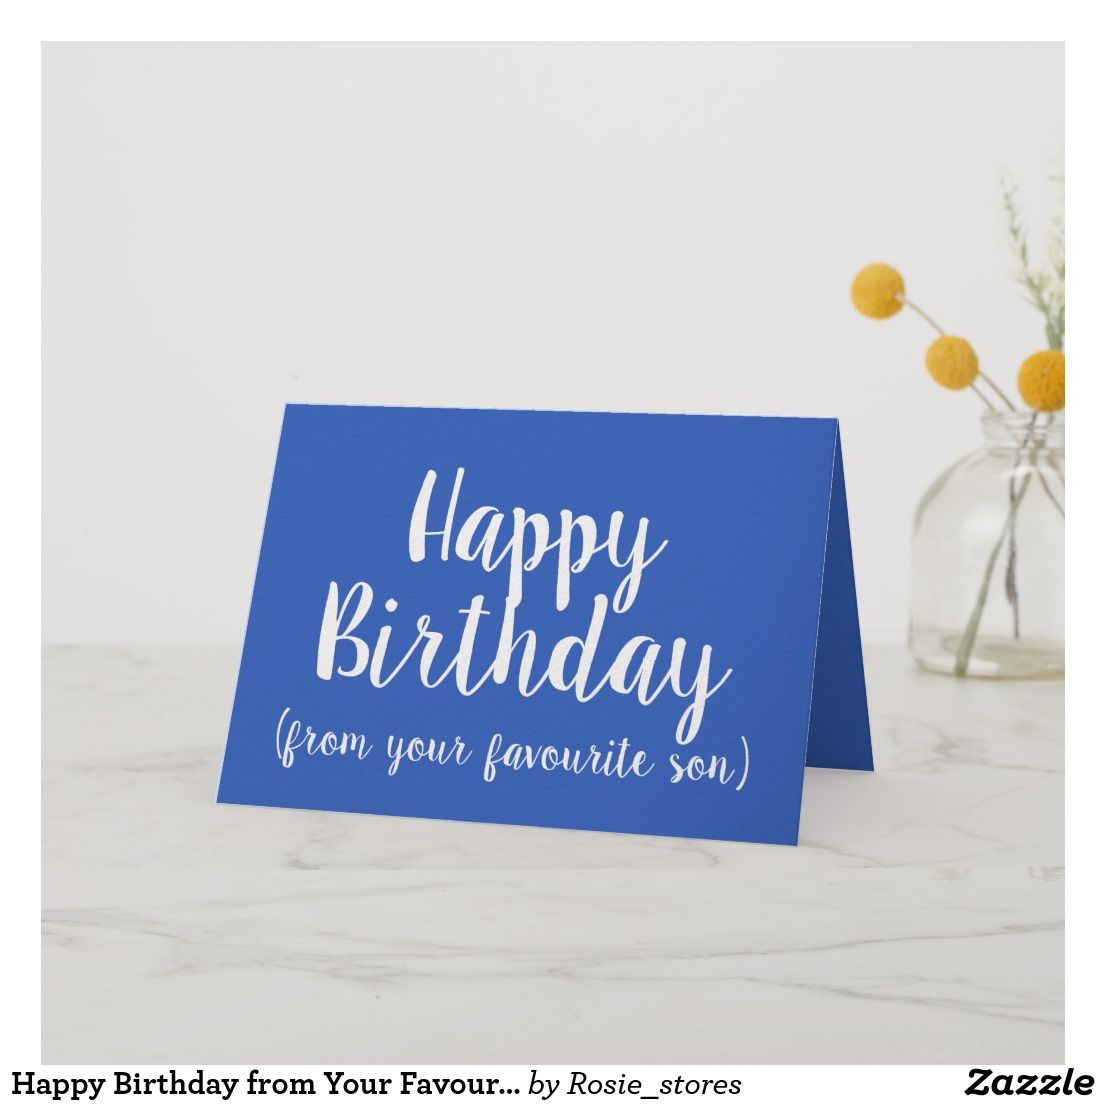 Happy Birthday From Your Favourite Son Funny Card Cardsfunny Cardsgreeting Cardshappy Cardbirthday Greeting Cardsonline